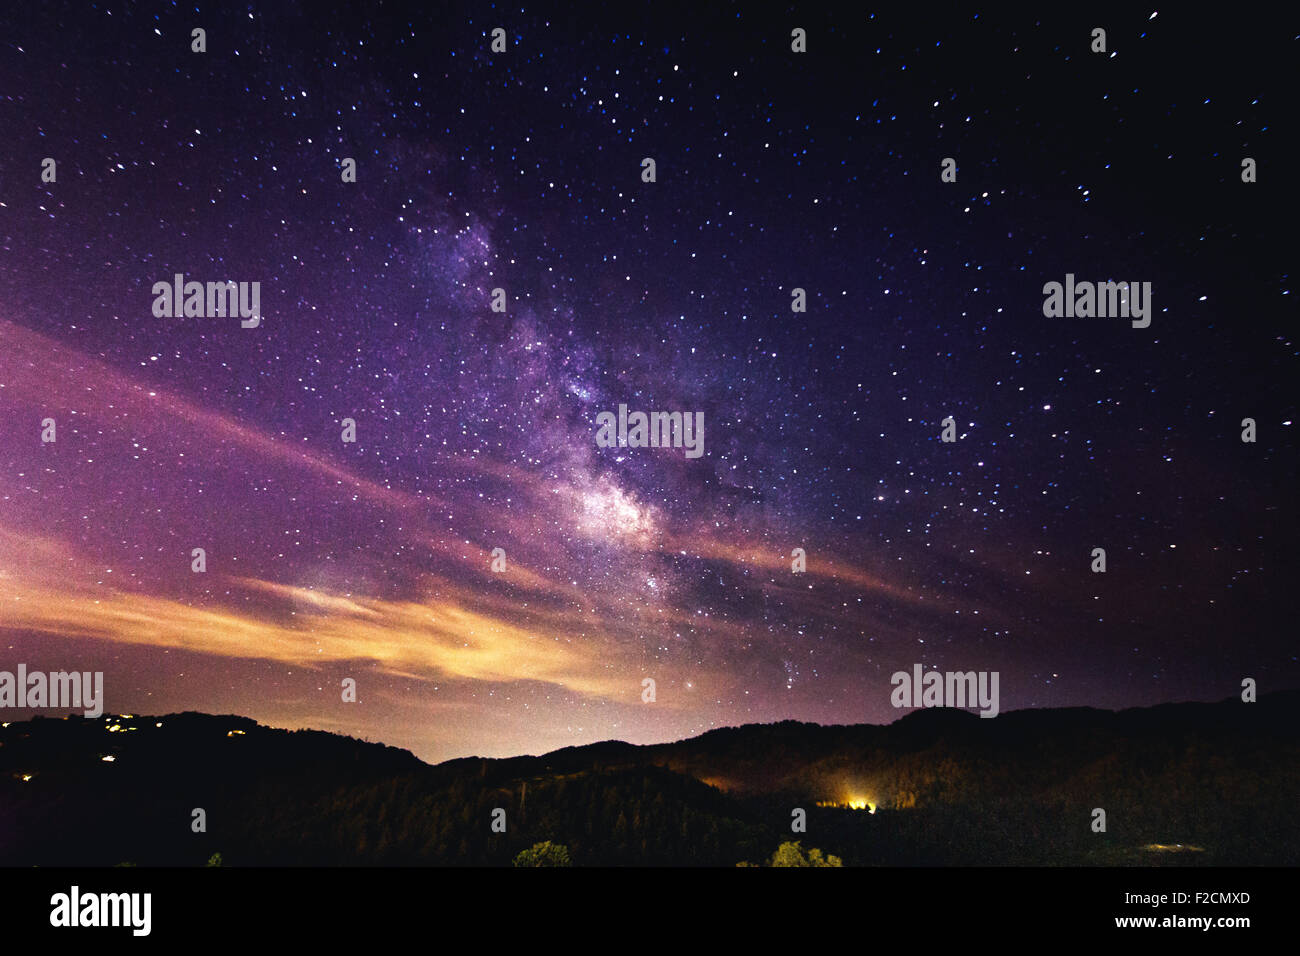 Le ciel de nuit - stars et Milky Way Photo Stock